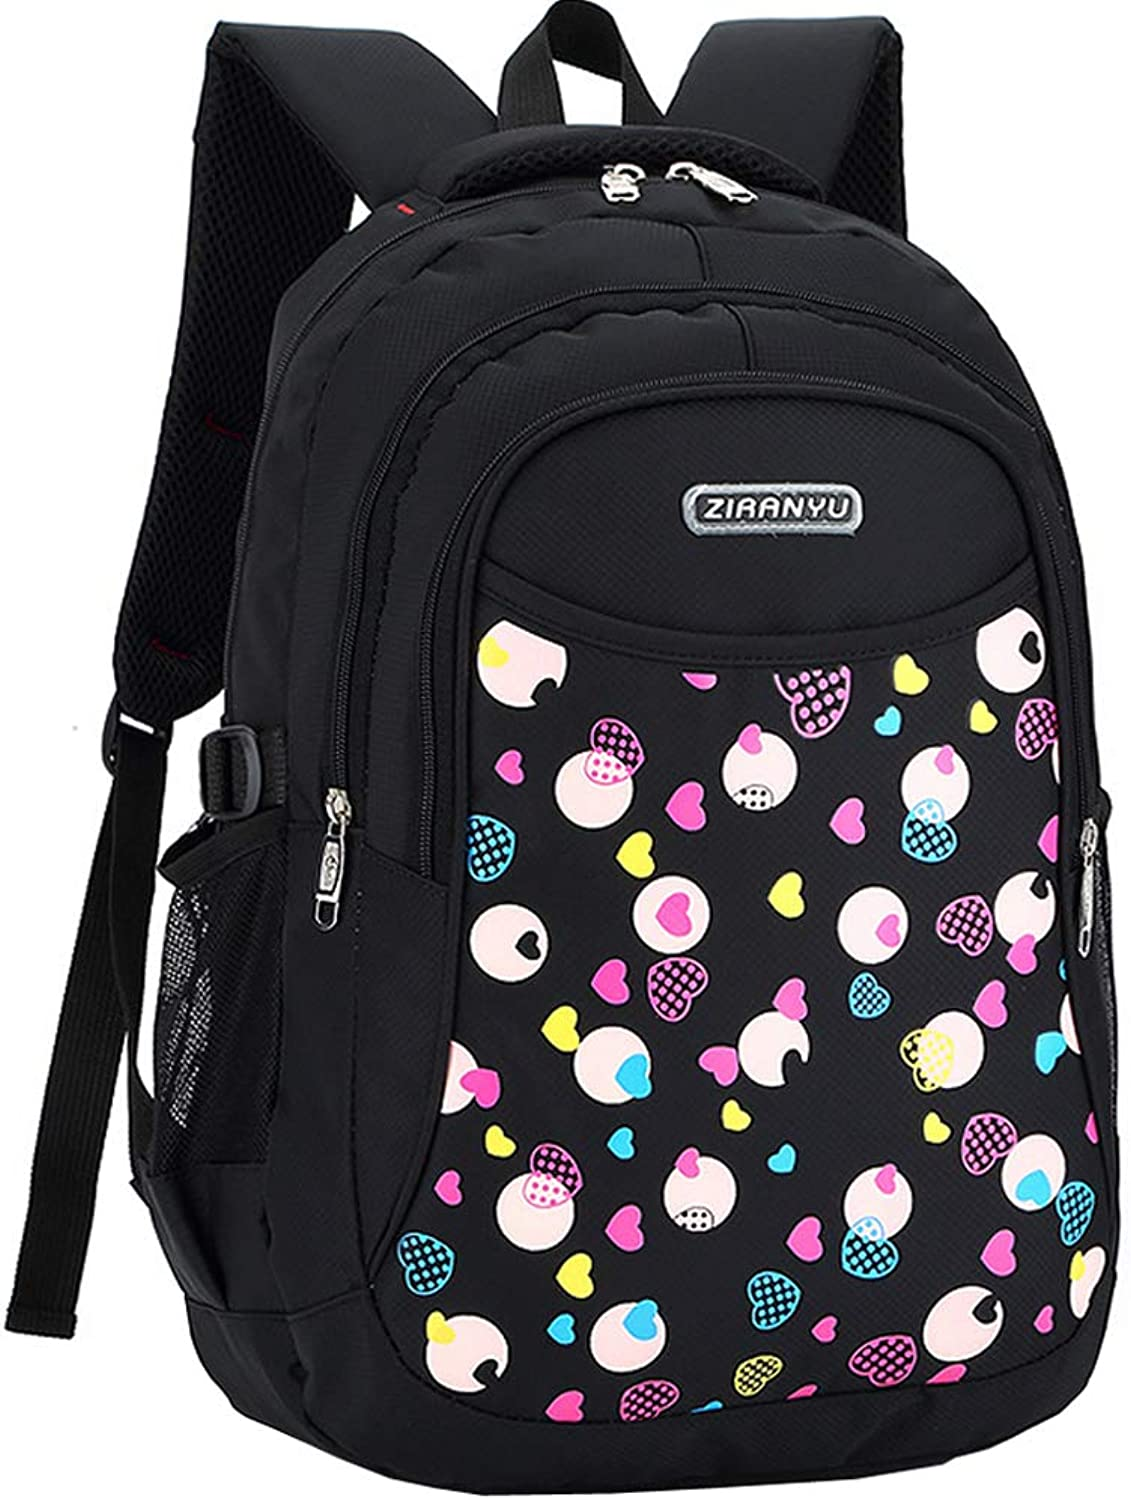 Backpack  Primary Students Girls Sweet Printing High Quality Durable Bookbag Backpack (Black)